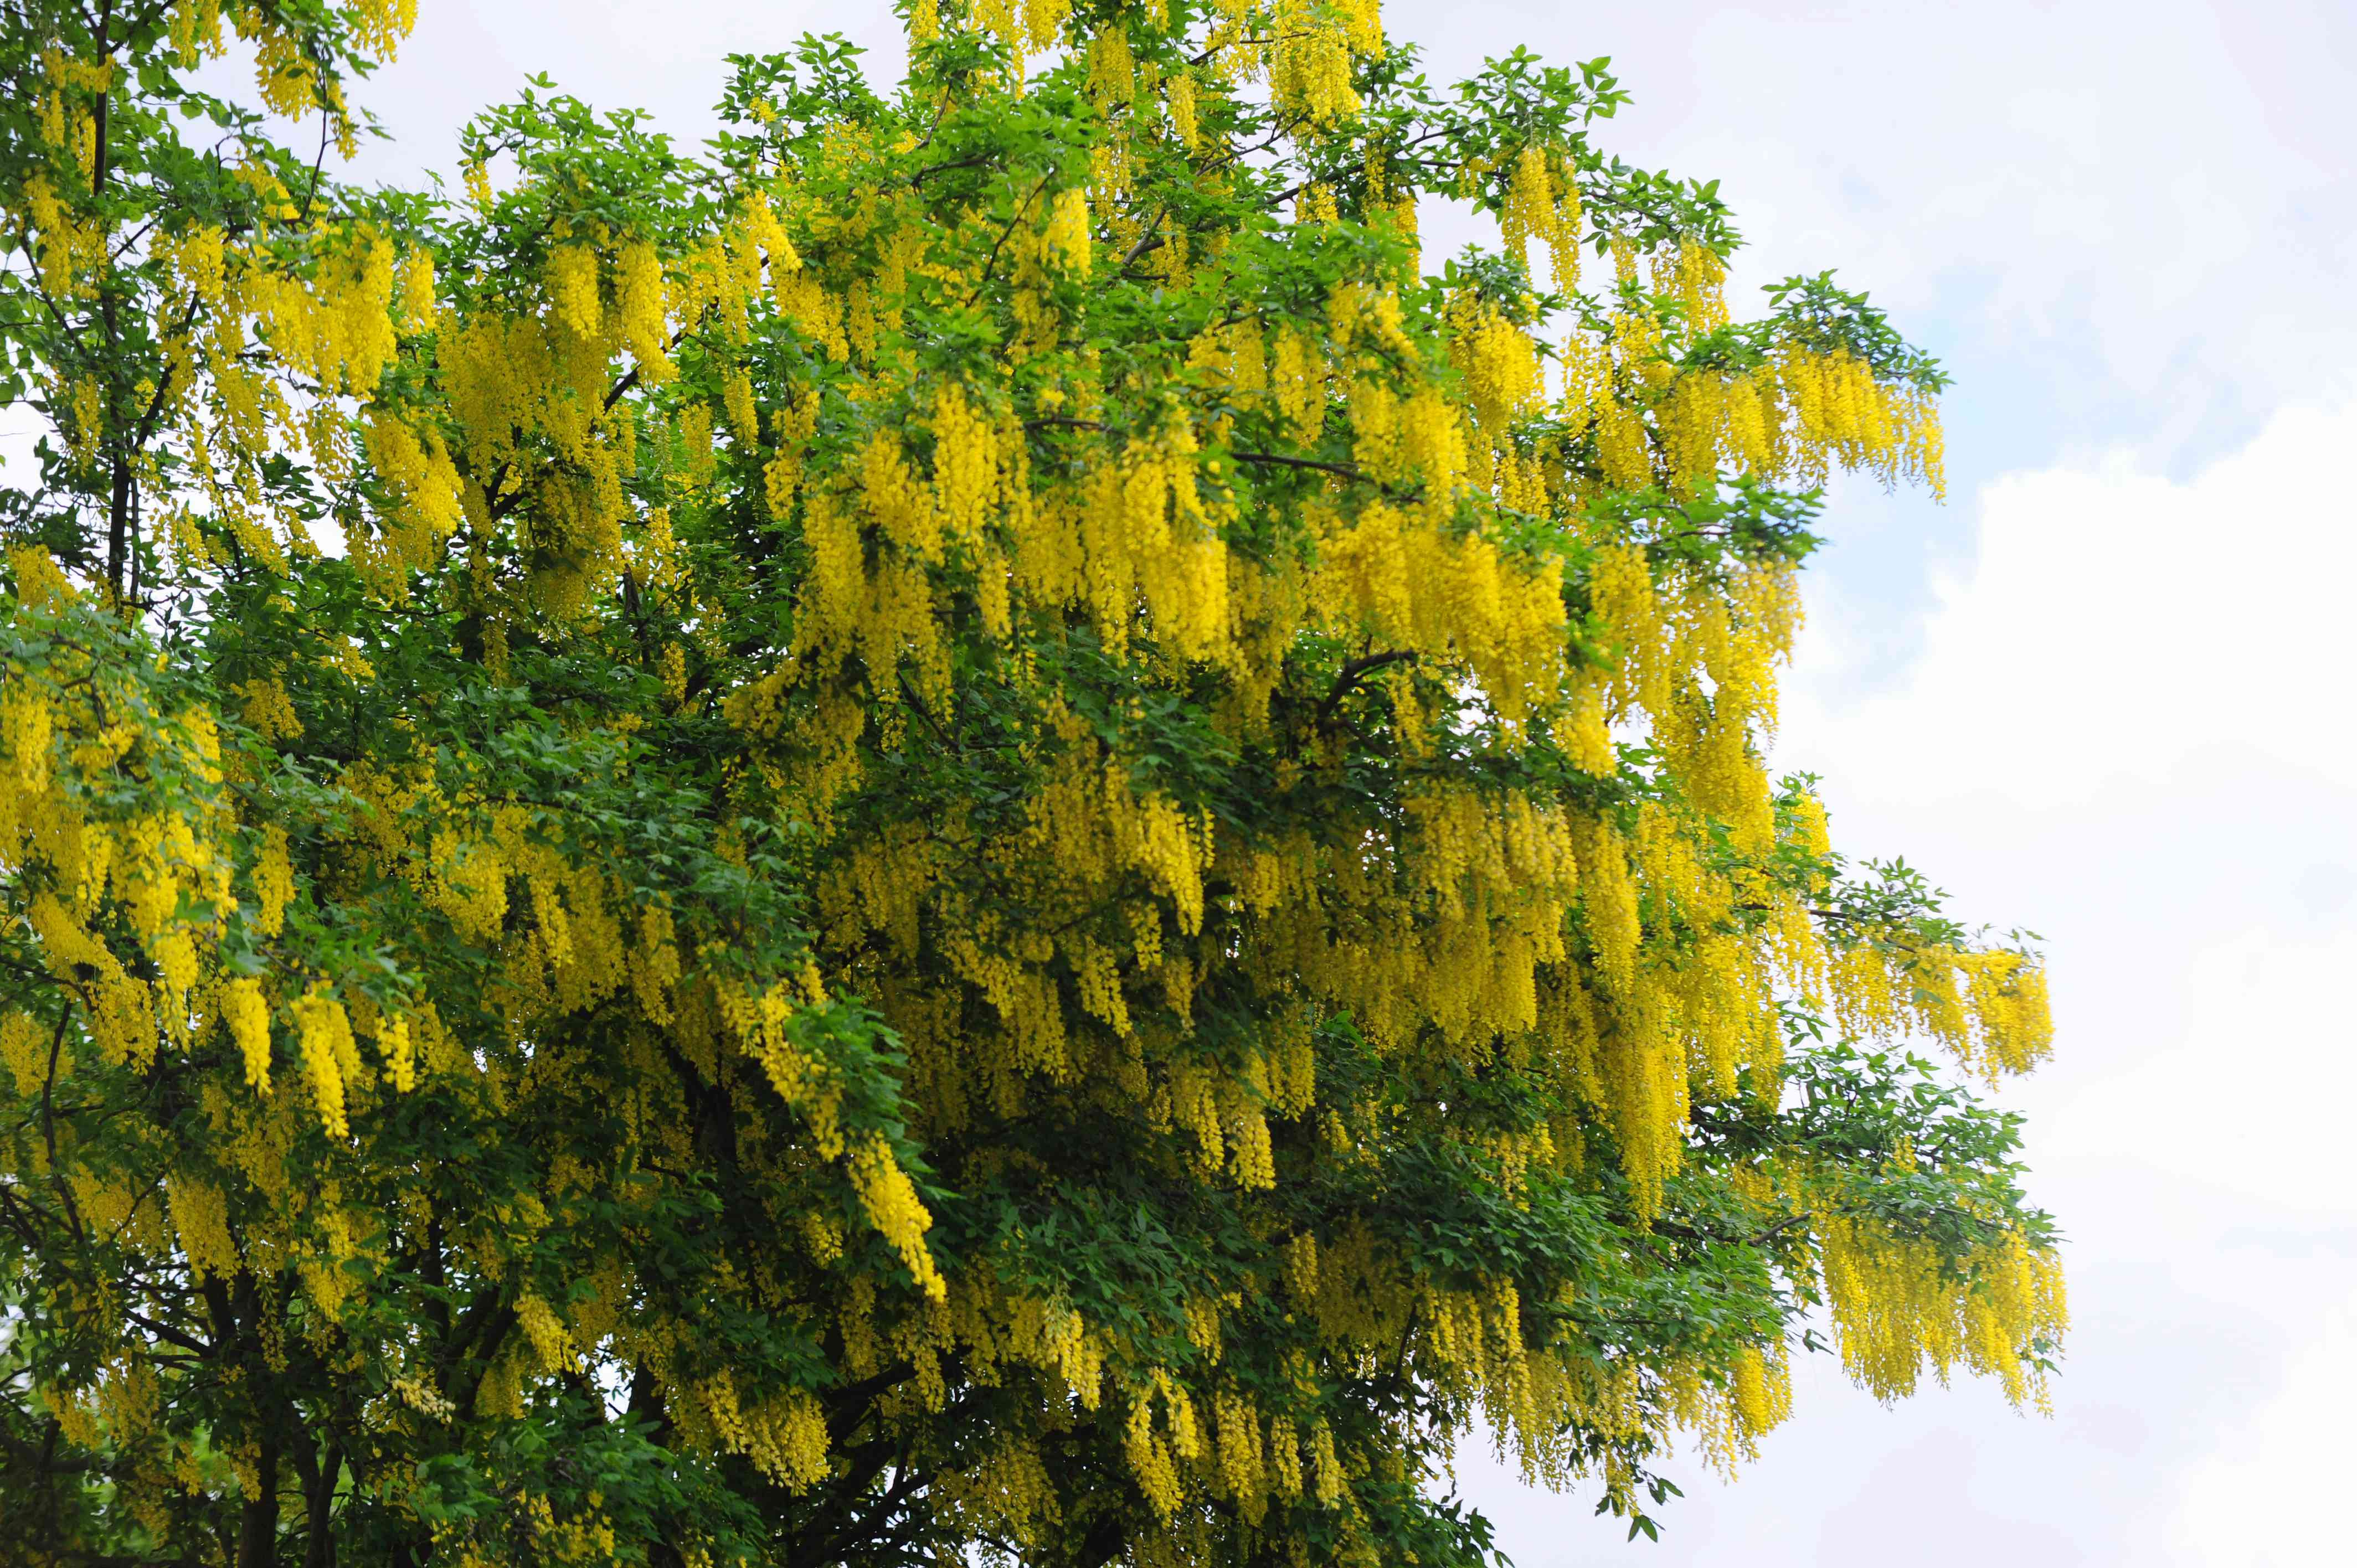 Golden chain tree with golden-yellow flowers and leaves blowing in wind